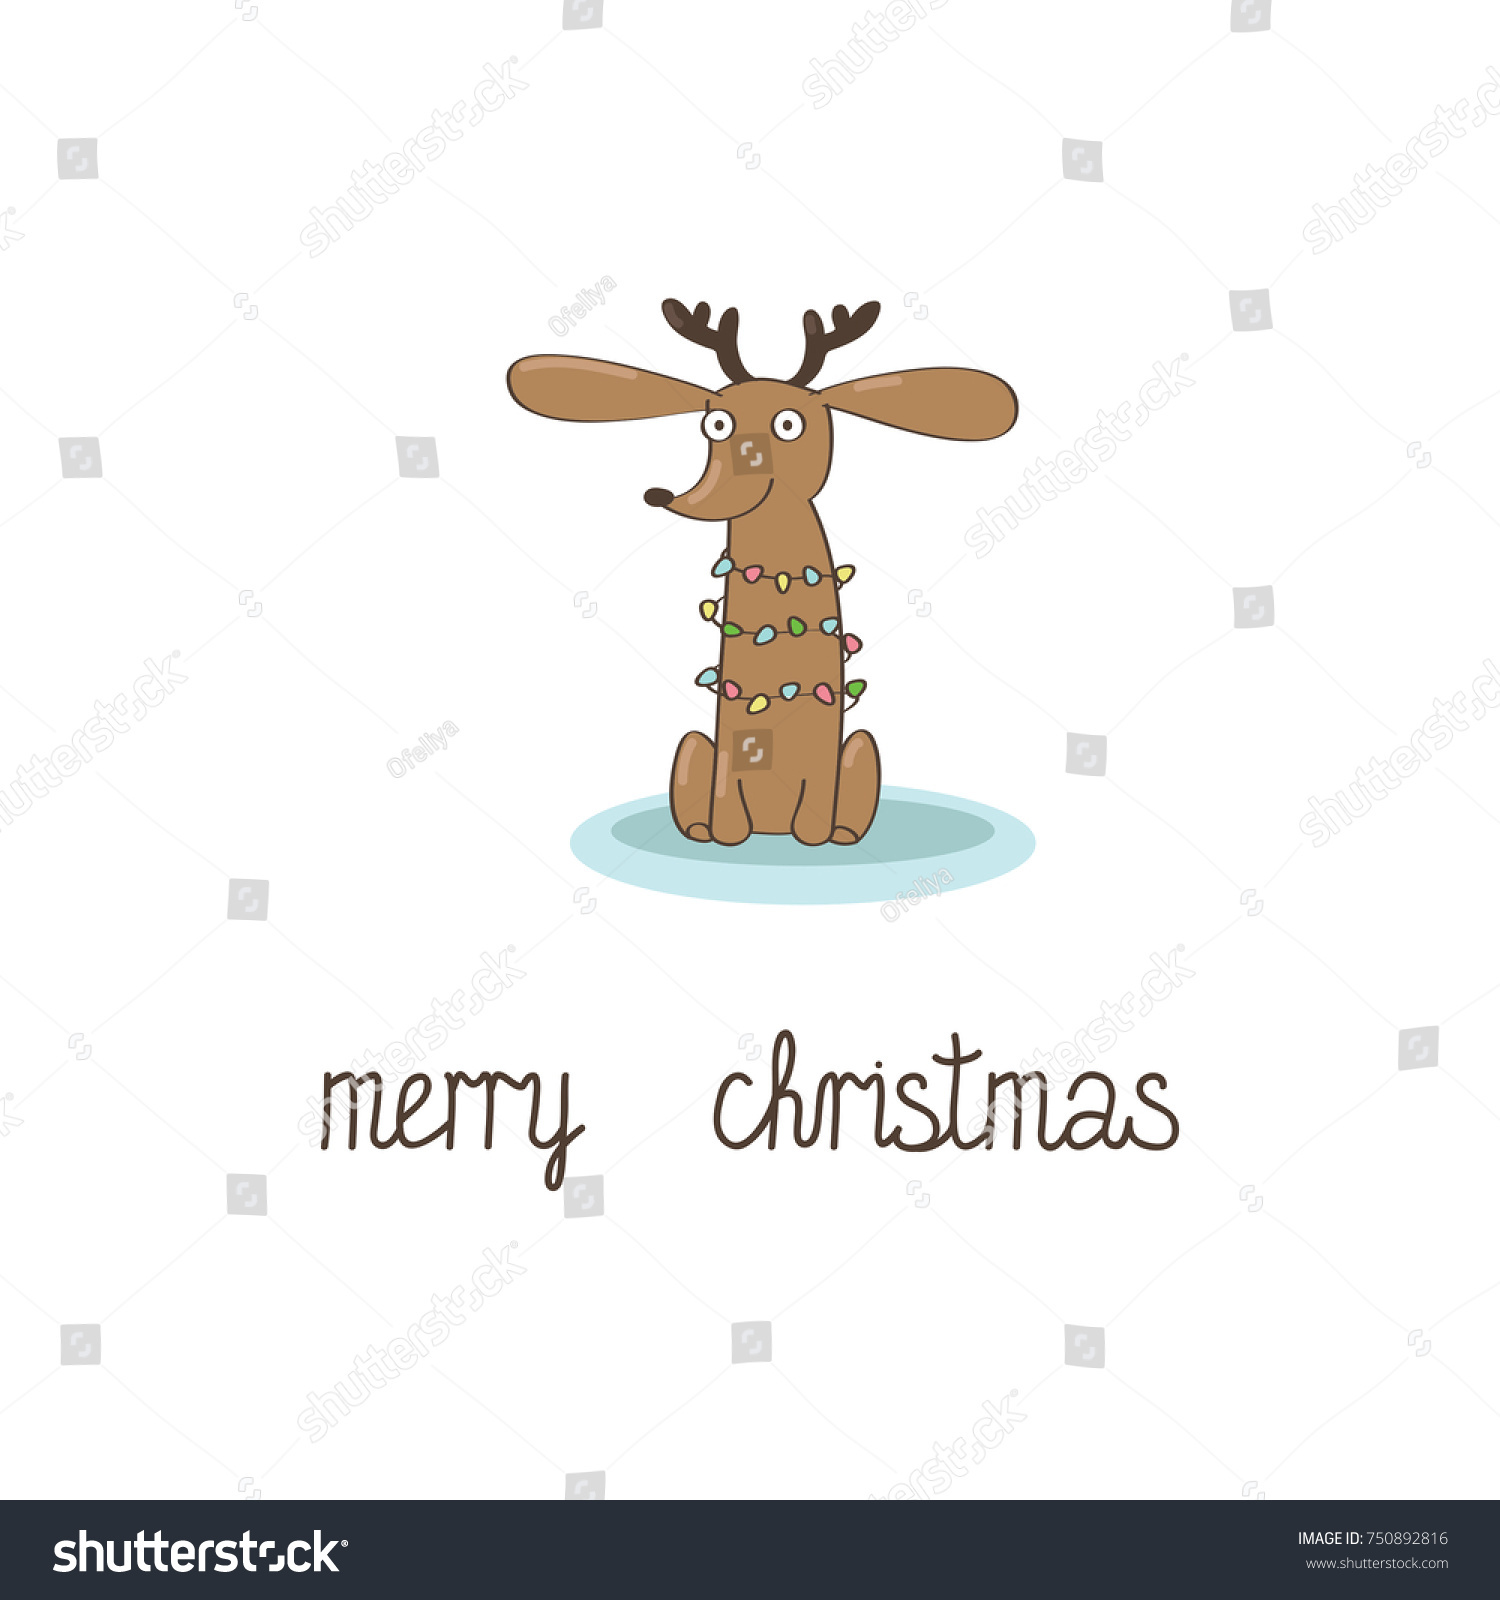 Merry christmas greeting card lettering sitting stock vector merry christmas greeting card with a lettering and a sitting dachshund puppy in a reindeer costume kristyandbryce Image collections